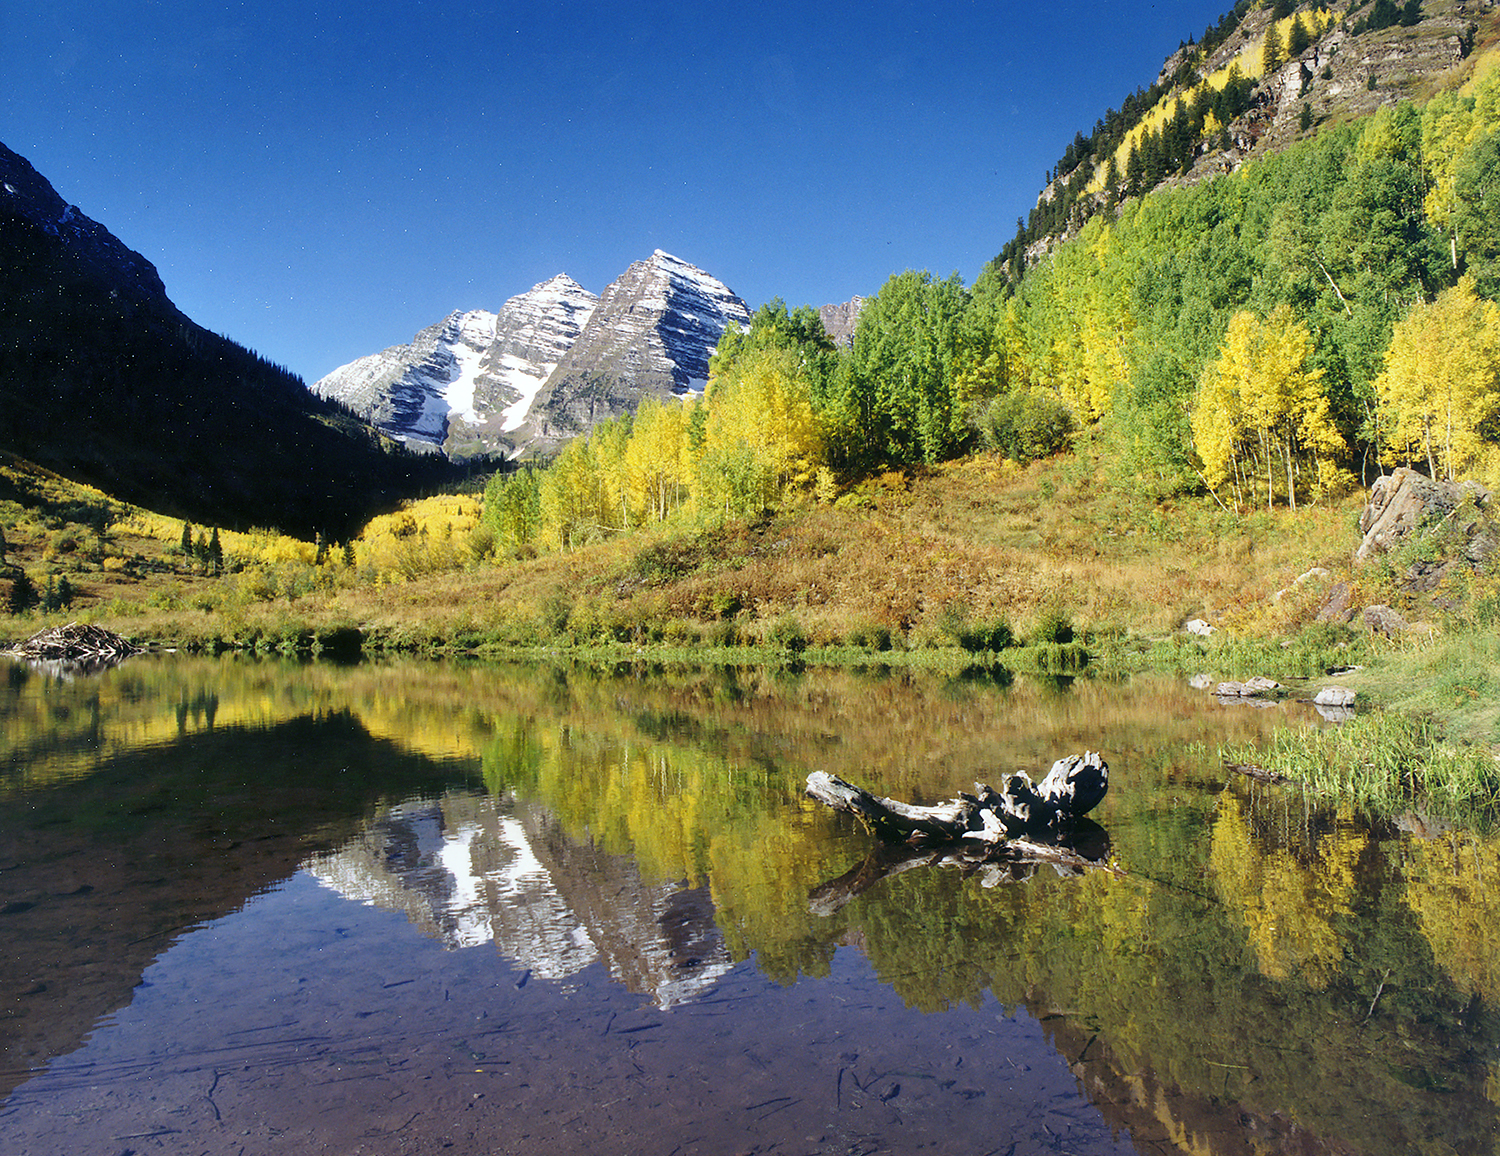 Autumn at the Maroon Bells